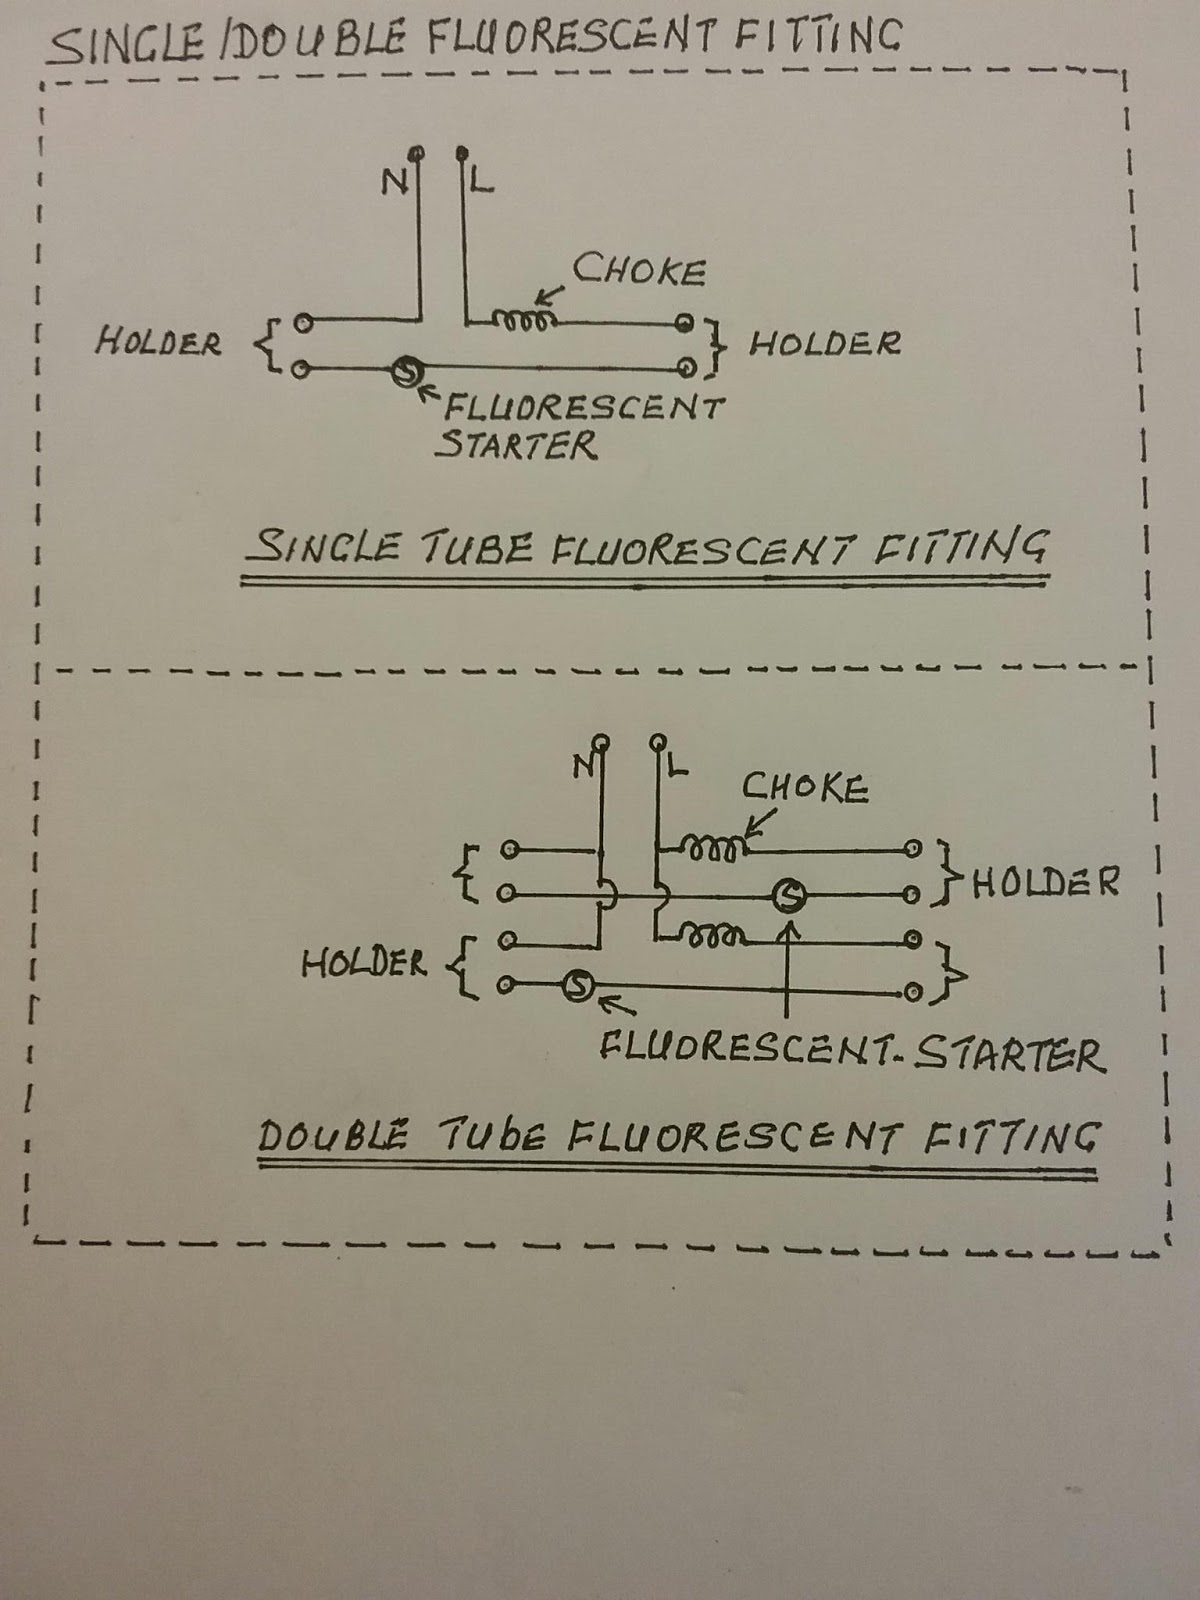 hight resolution of this is the single line diagram for c set with choke and fluorescent starter for fluorescent fitting